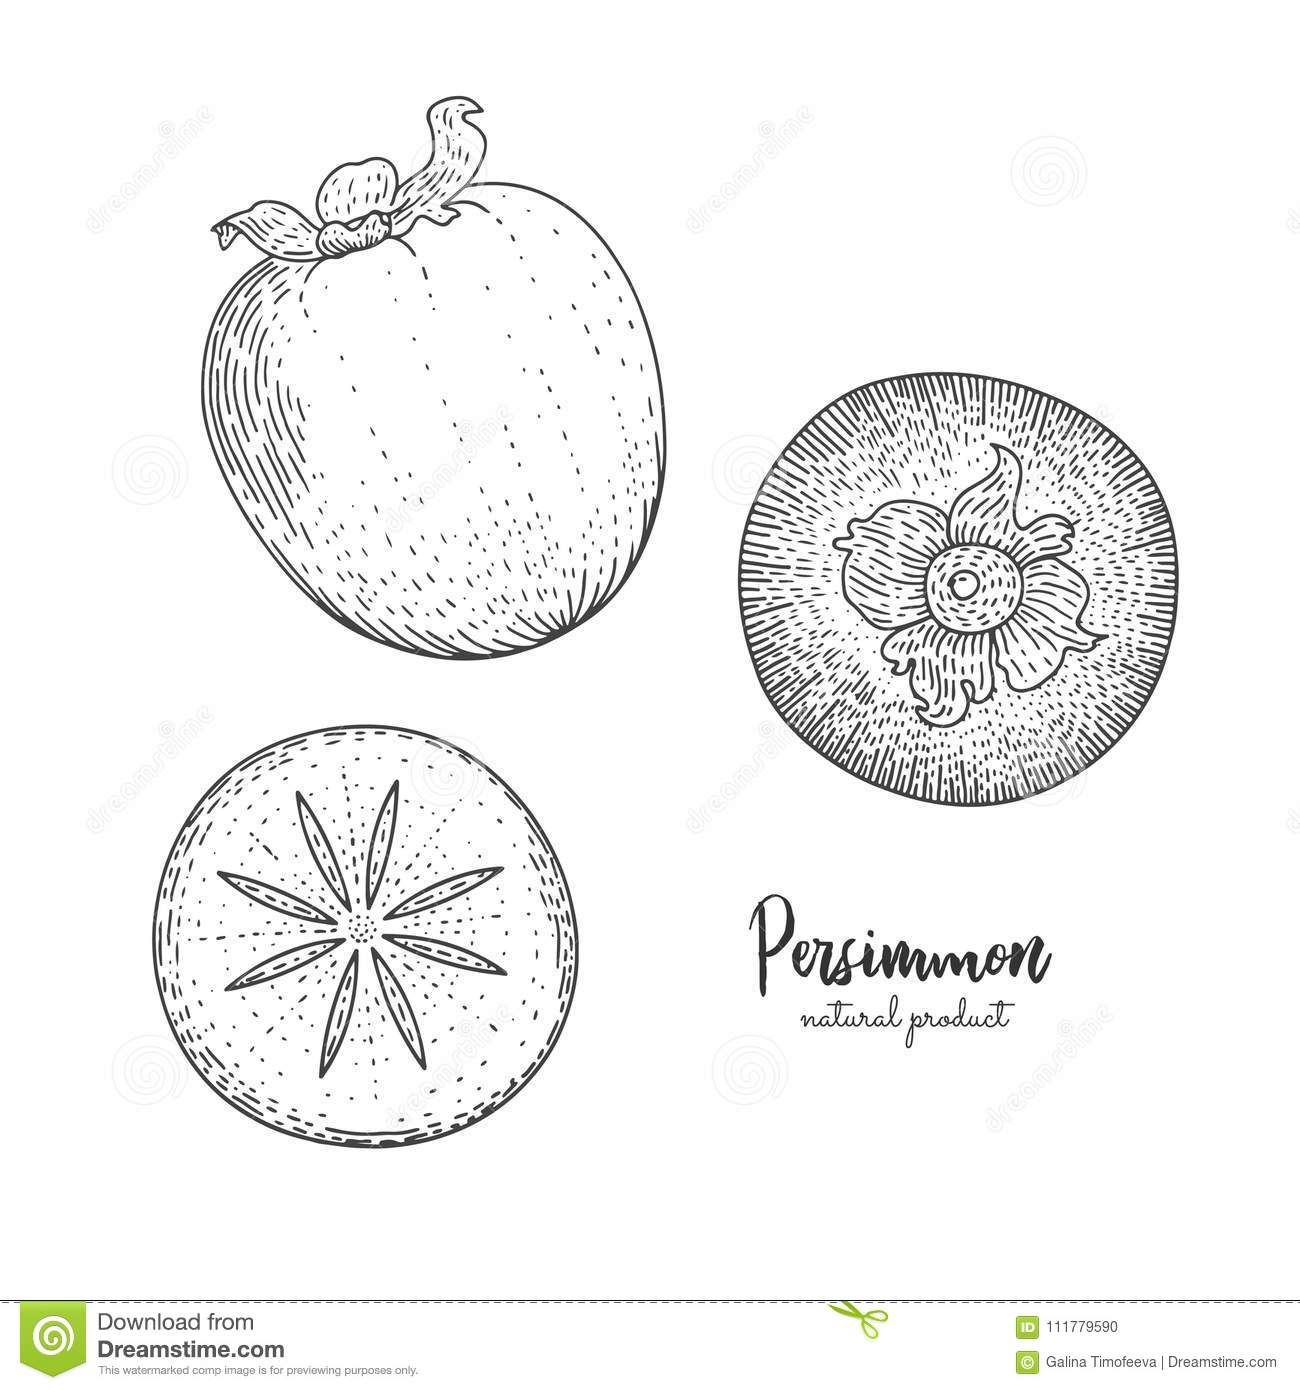 Fruit illustration with persimmon in the style of engraving. Detailed vegetarian food. Hand drawn elements for menu